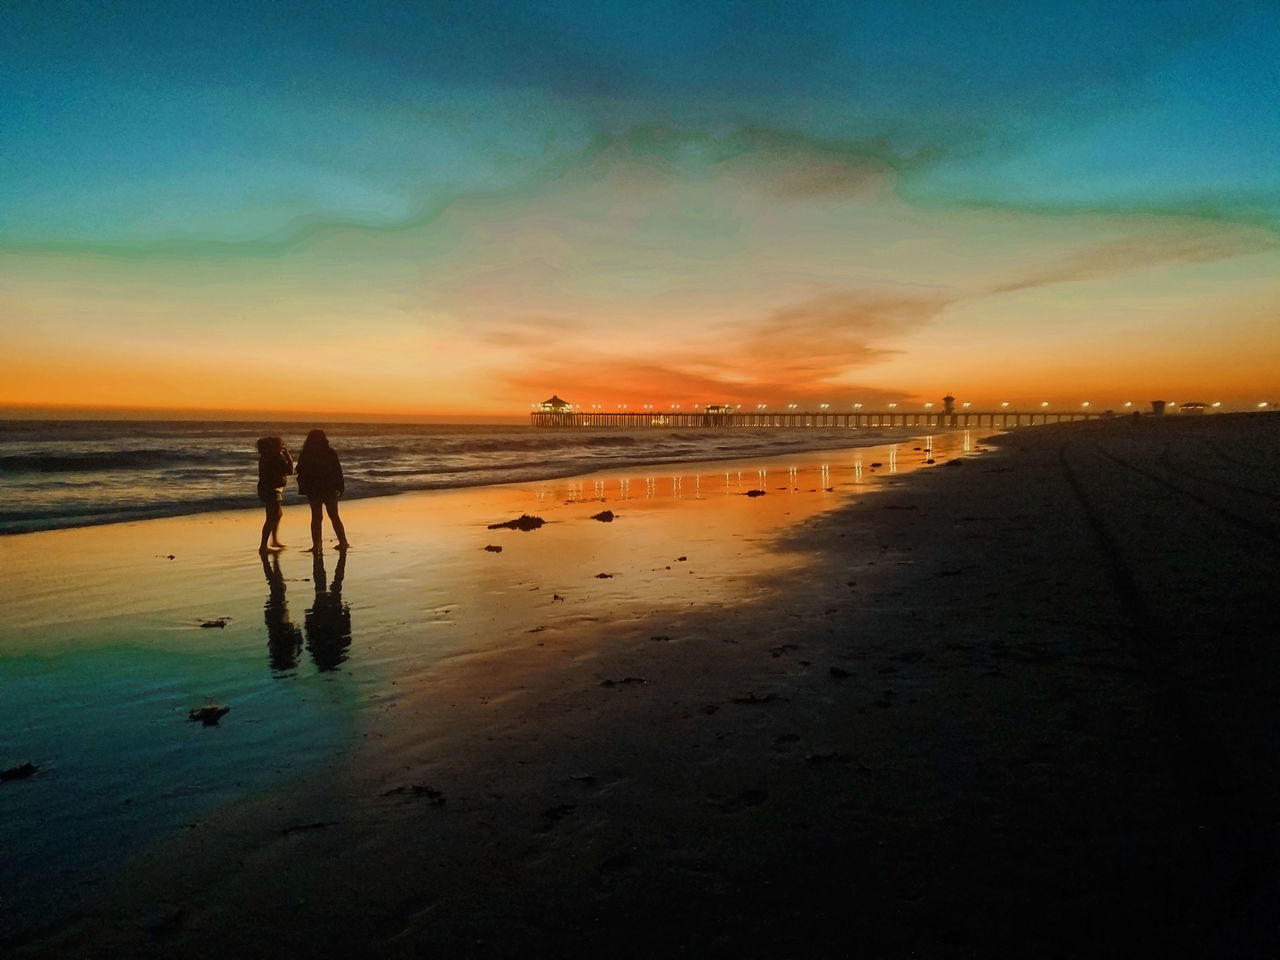 beach, sunset, sea, sky, silhouette, sand, nature, water, real people, full length, walking, vacations, beauty in nature, scenics, tranquil scene, leisure activity, outdoors, two people, cloud - sky, tranquility, horizon over water, men, standing, lifestyles, togetherness, women, wave, day, adult, people